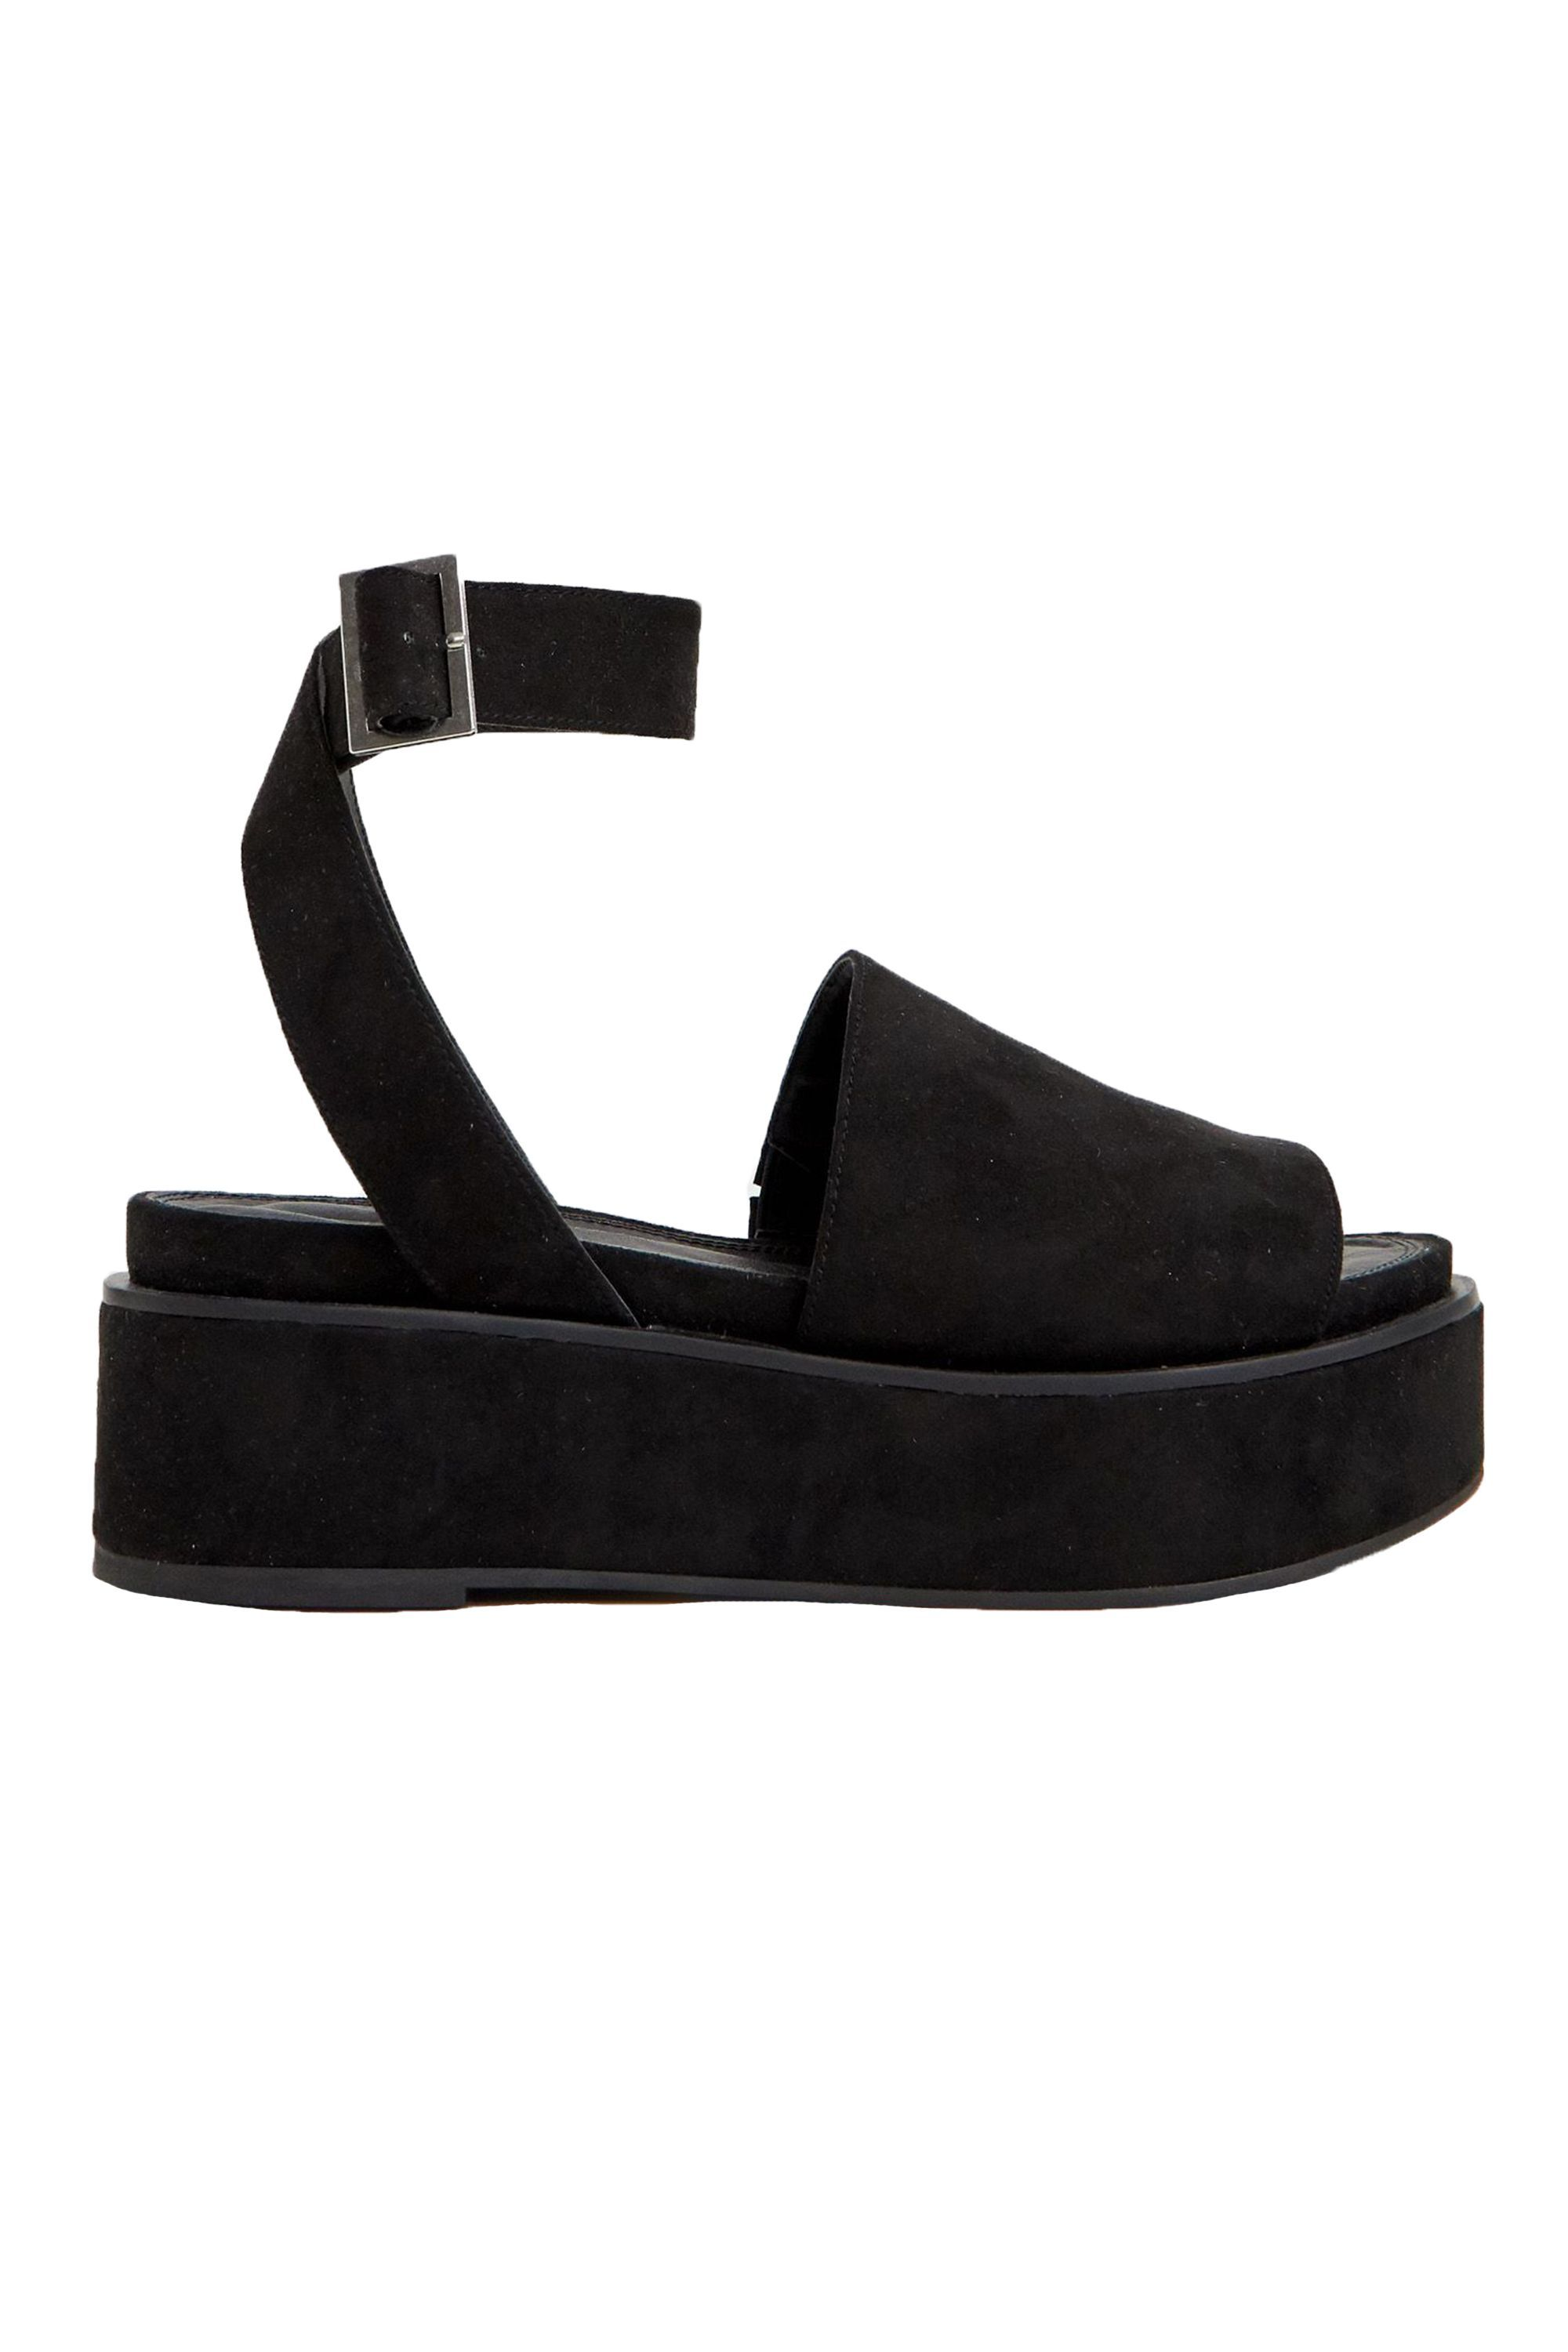 Asos Taylor Flatform Sandals Design Fit Wide xBrCedo